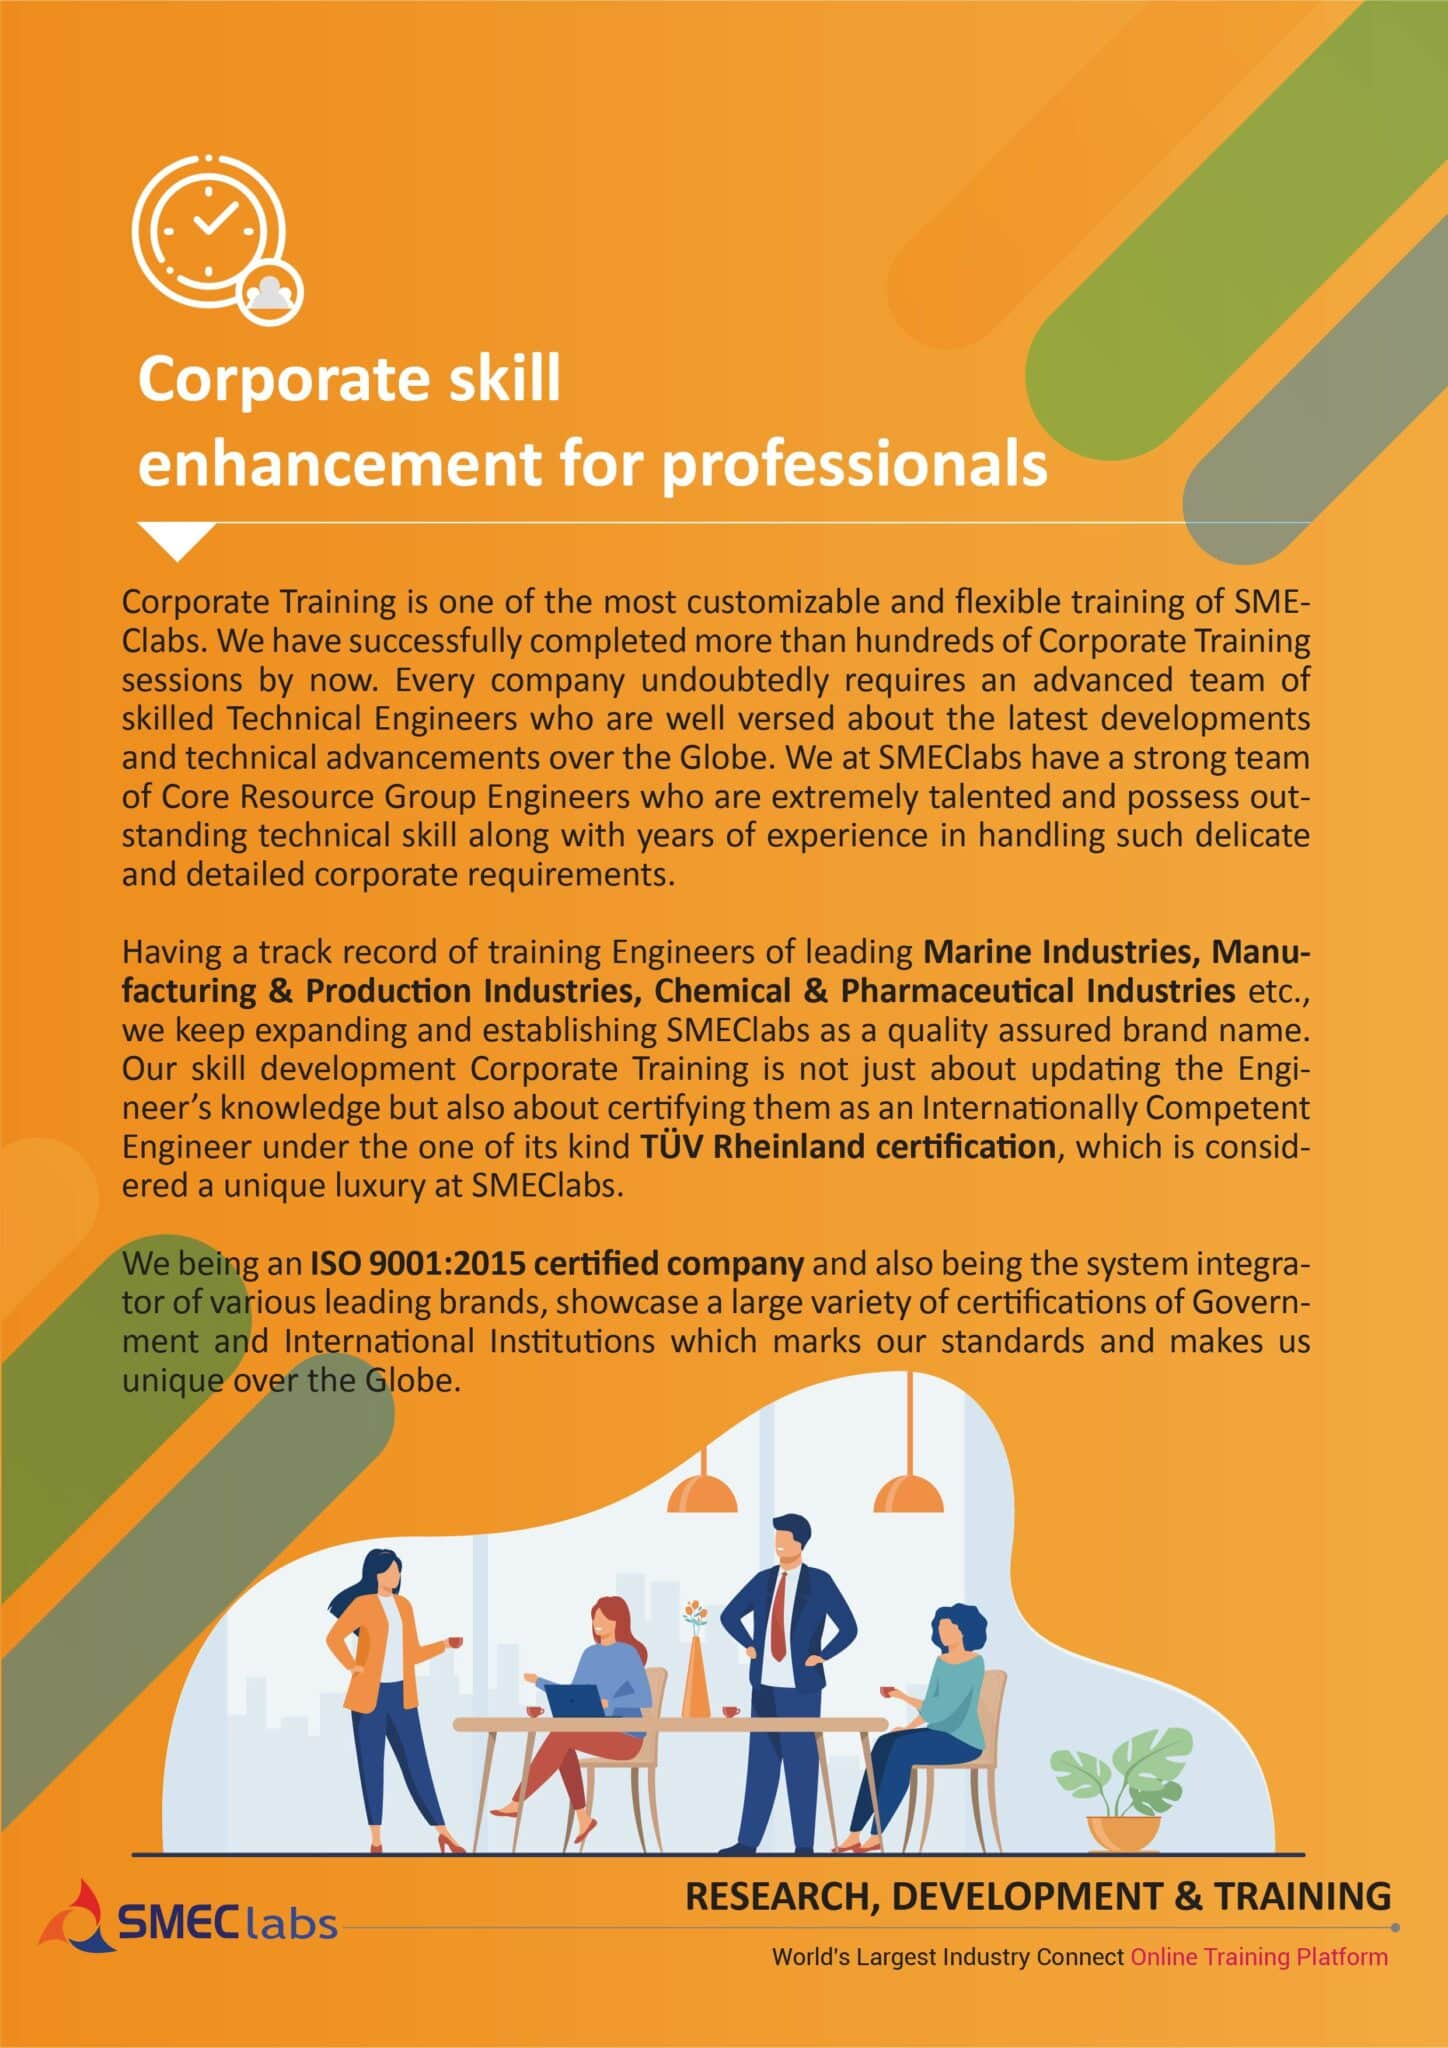 Corporate skill enhancement for professionals-smeclabs